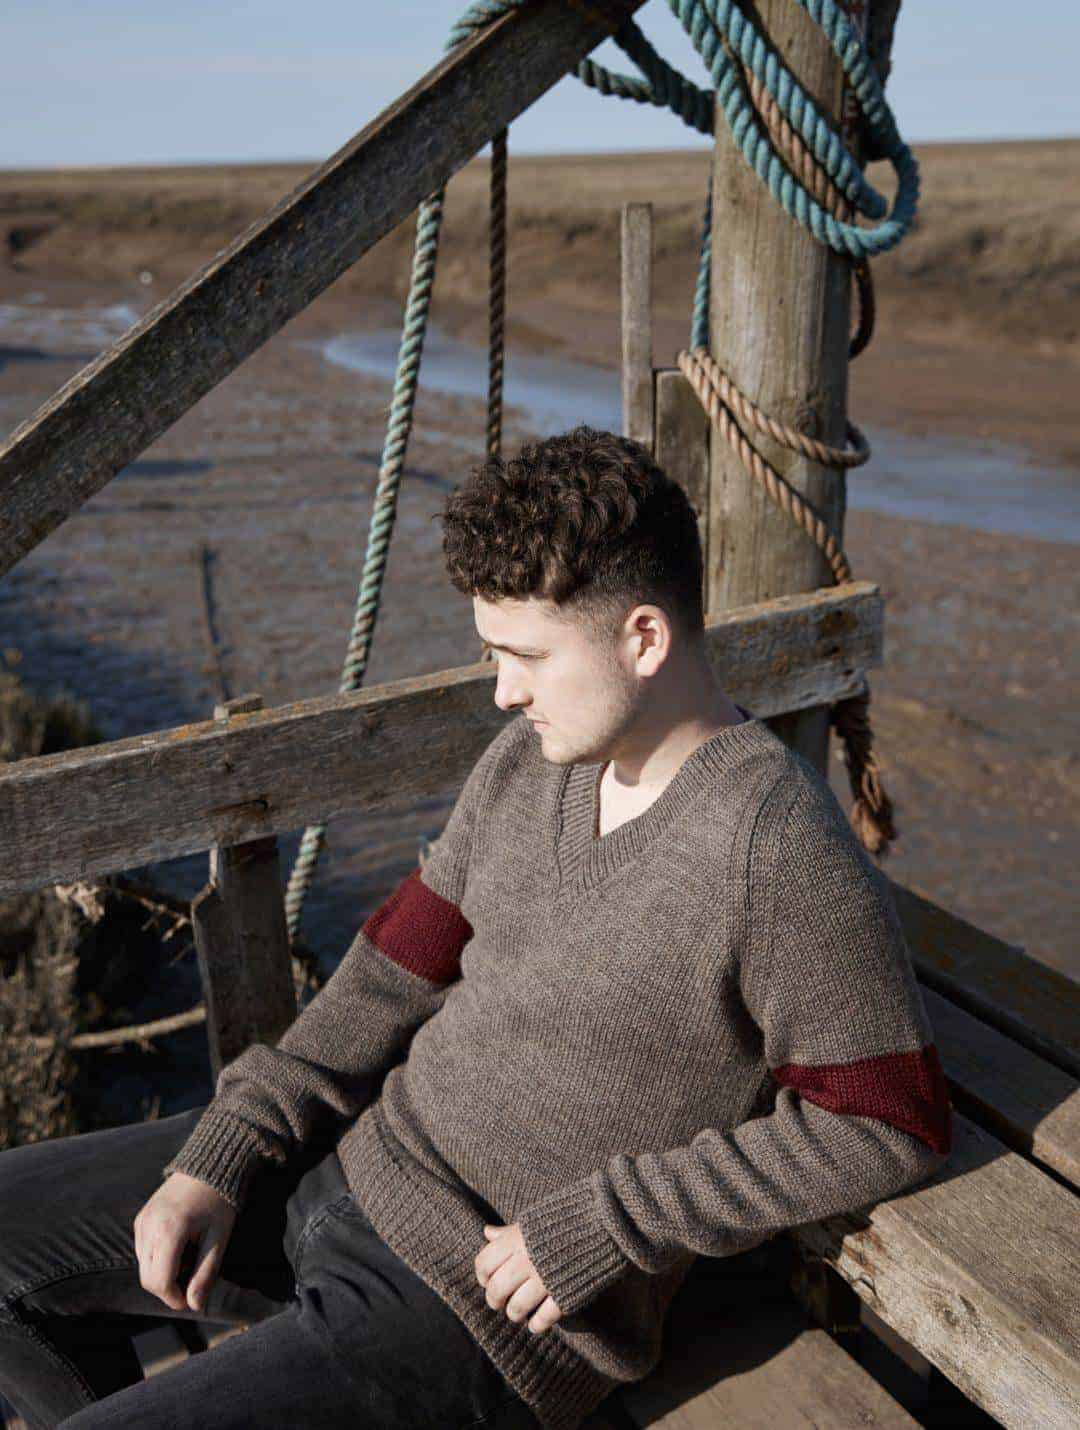 love the new seasonal natural knitwear by izzy lane made in Britain using wool from her own flock of sheep. Click through to see the whole beautiful new collection